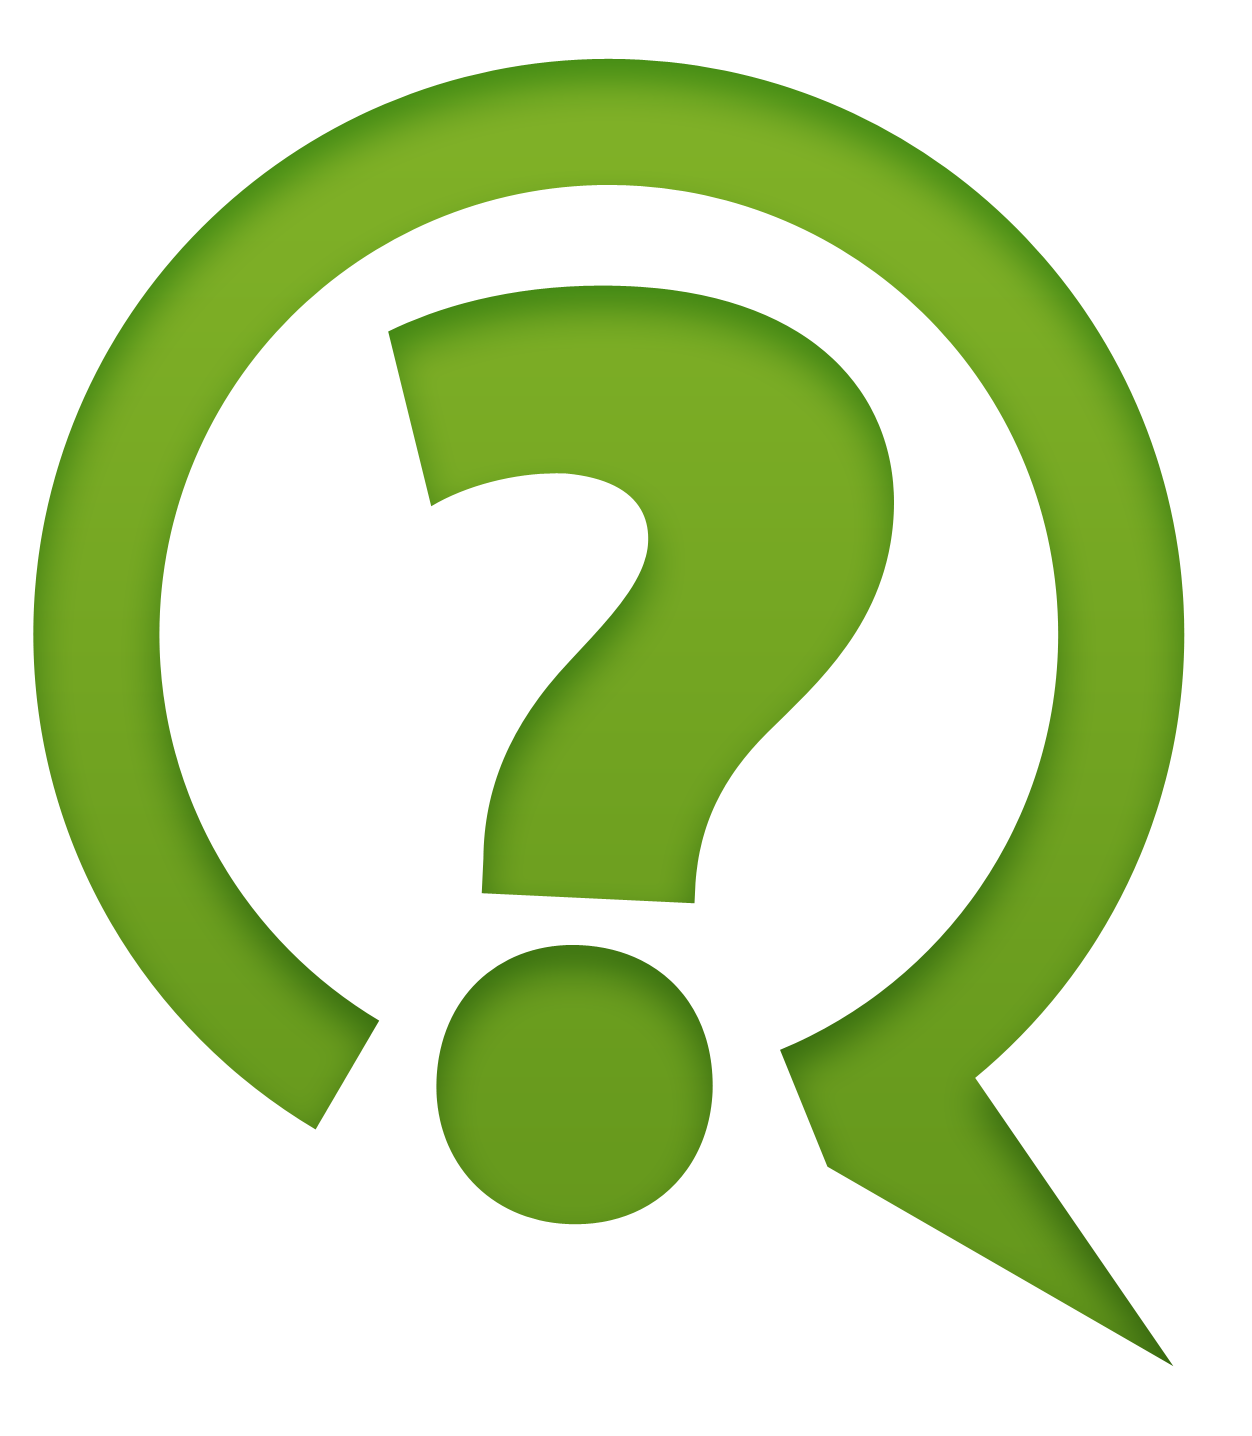 Mark icons png vector. Question clipart icon picture download